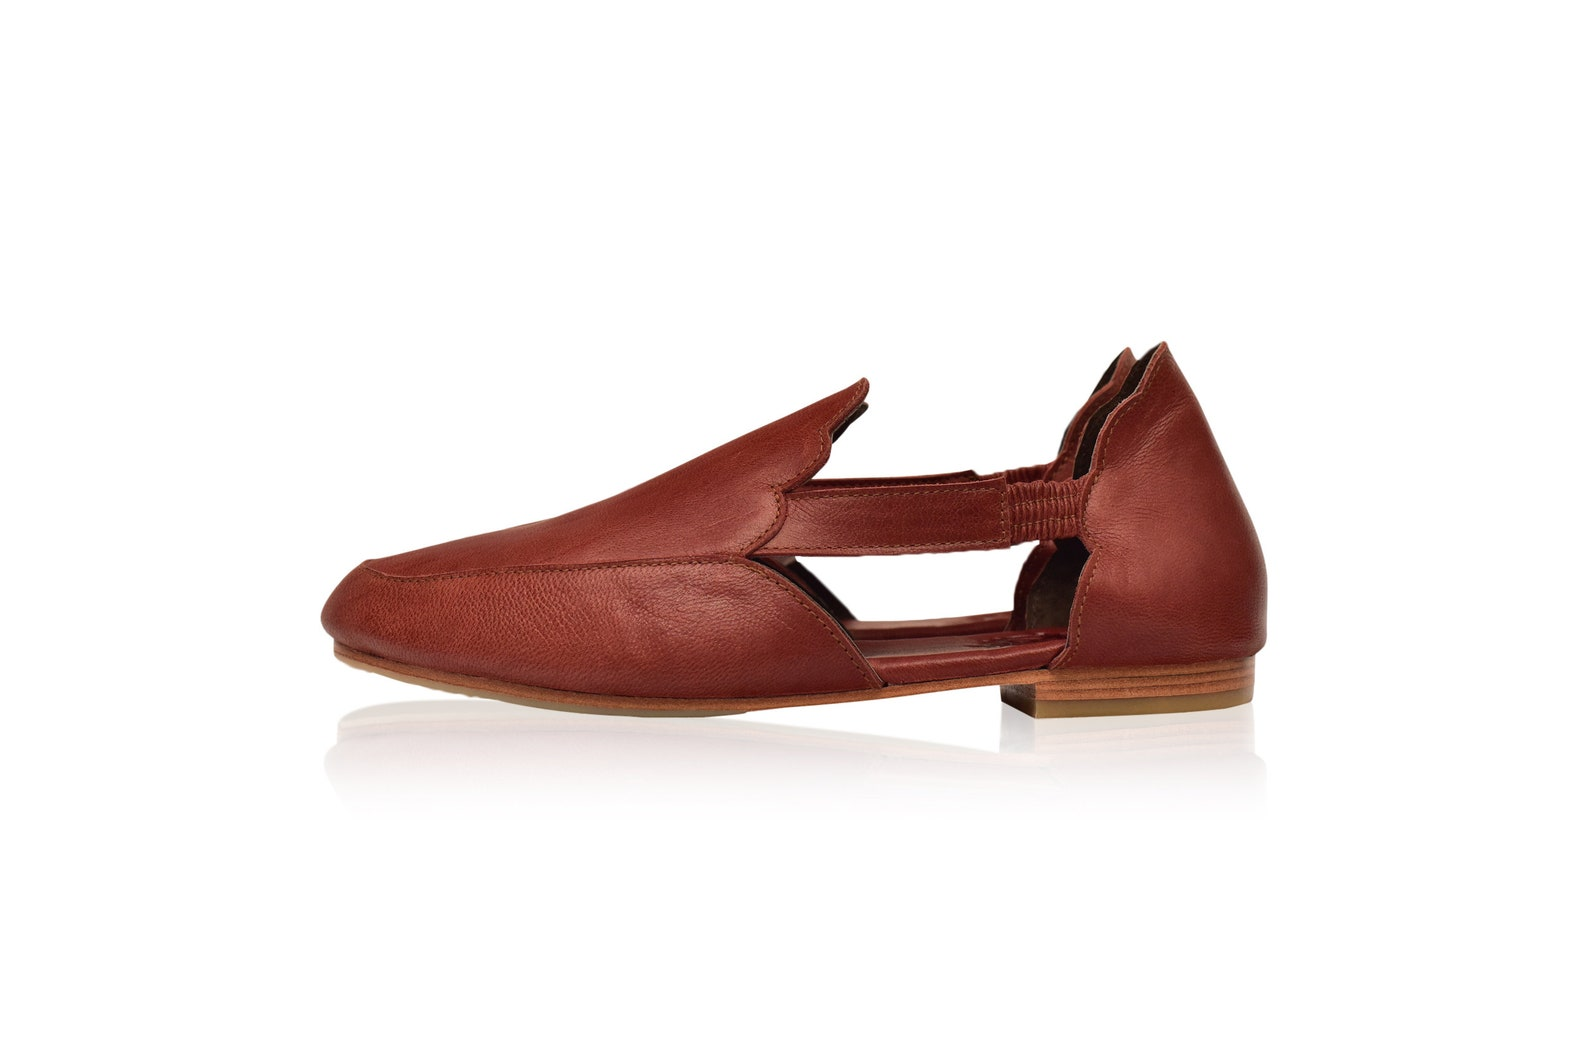 amalfi. brown leather flats / brown leather ballet flats / leather shoes handmade/ boho leather sandals sizes 35-43 available in